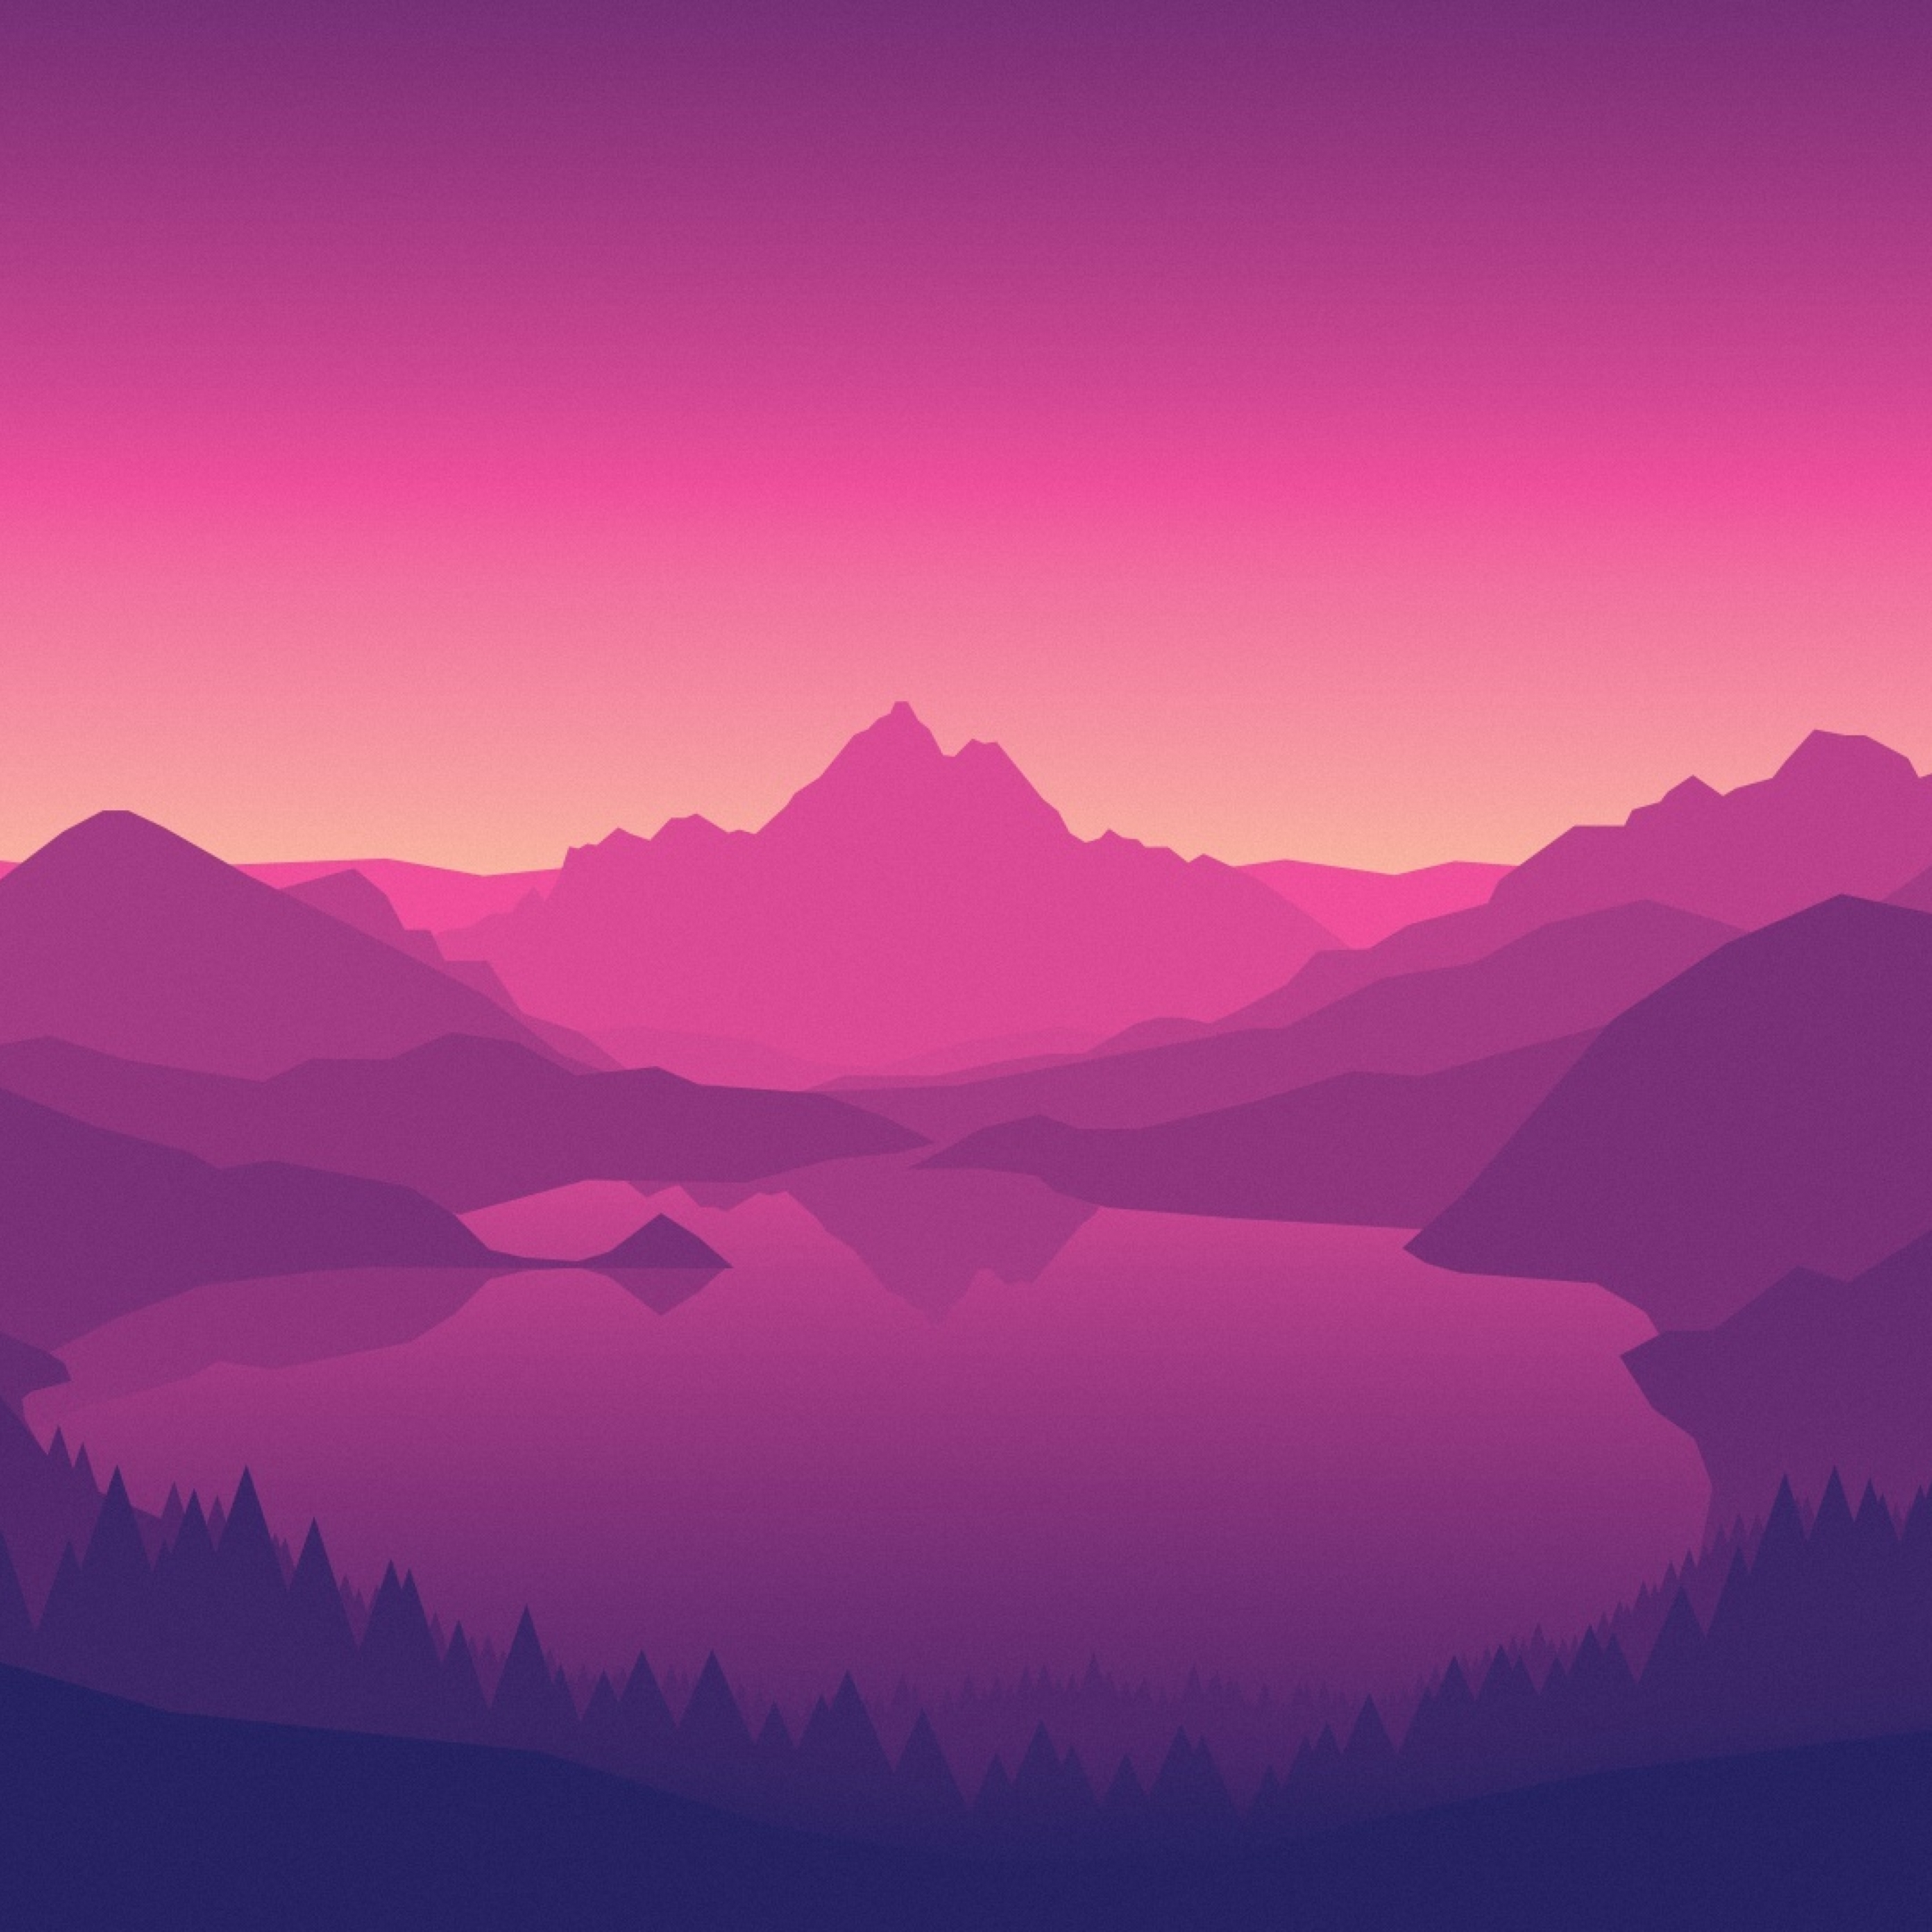 Download Firewatch Video Games Mountains Apple iPad Air wallpaper 2780x2780